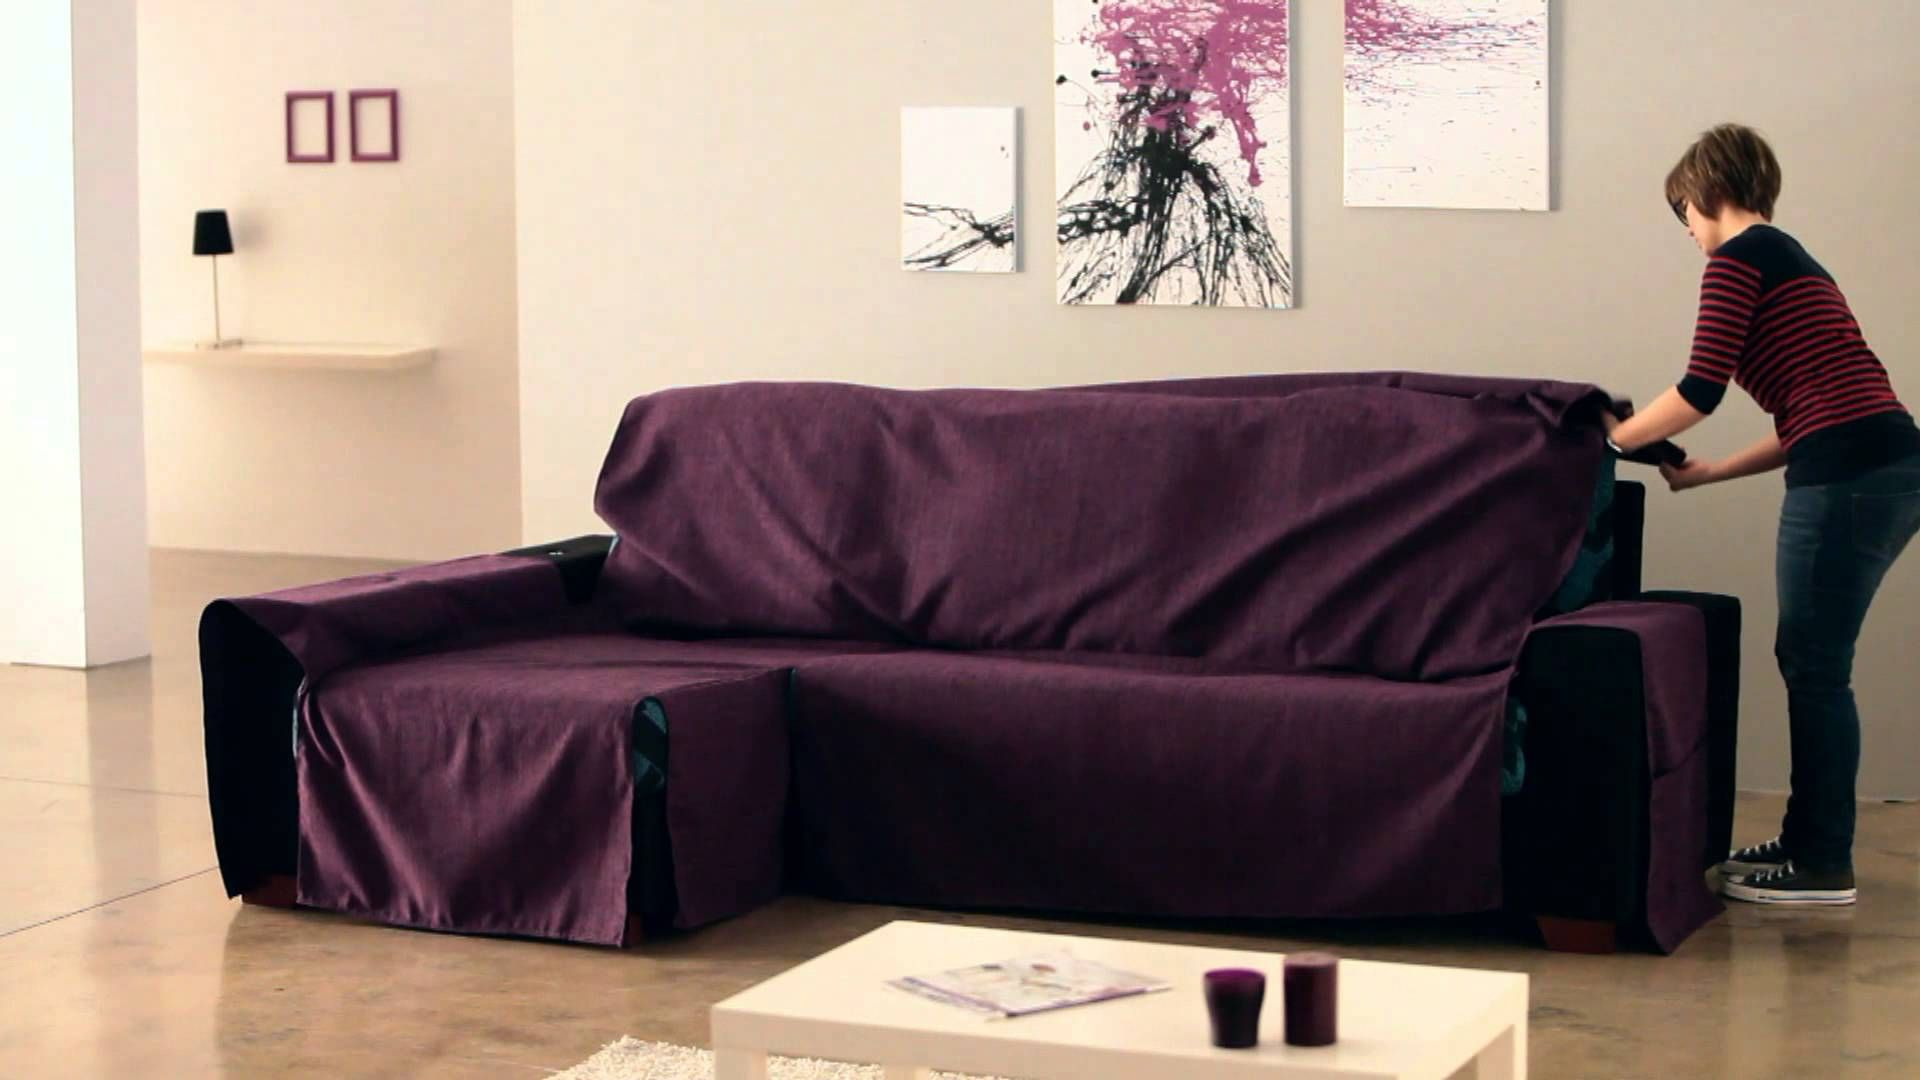 Best 10 Sofa bezug ideas on Pinterest